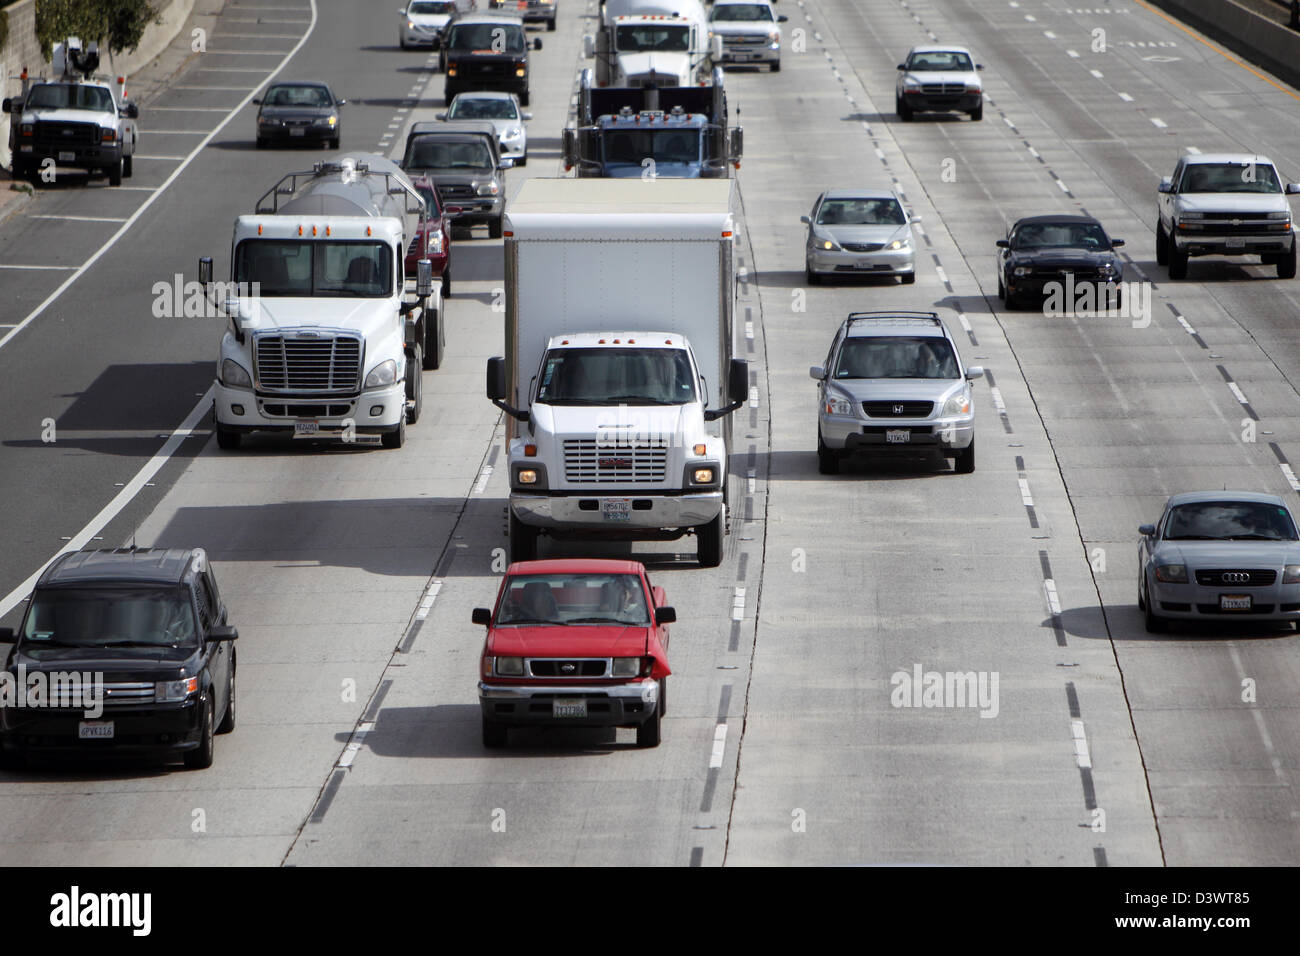 LOS ANGELES, CALIFORNIA, USA - FEBRUARY 21, 2013 - Traffic on the 210 Freeway in Pasadena in LA County on February - Stock Image